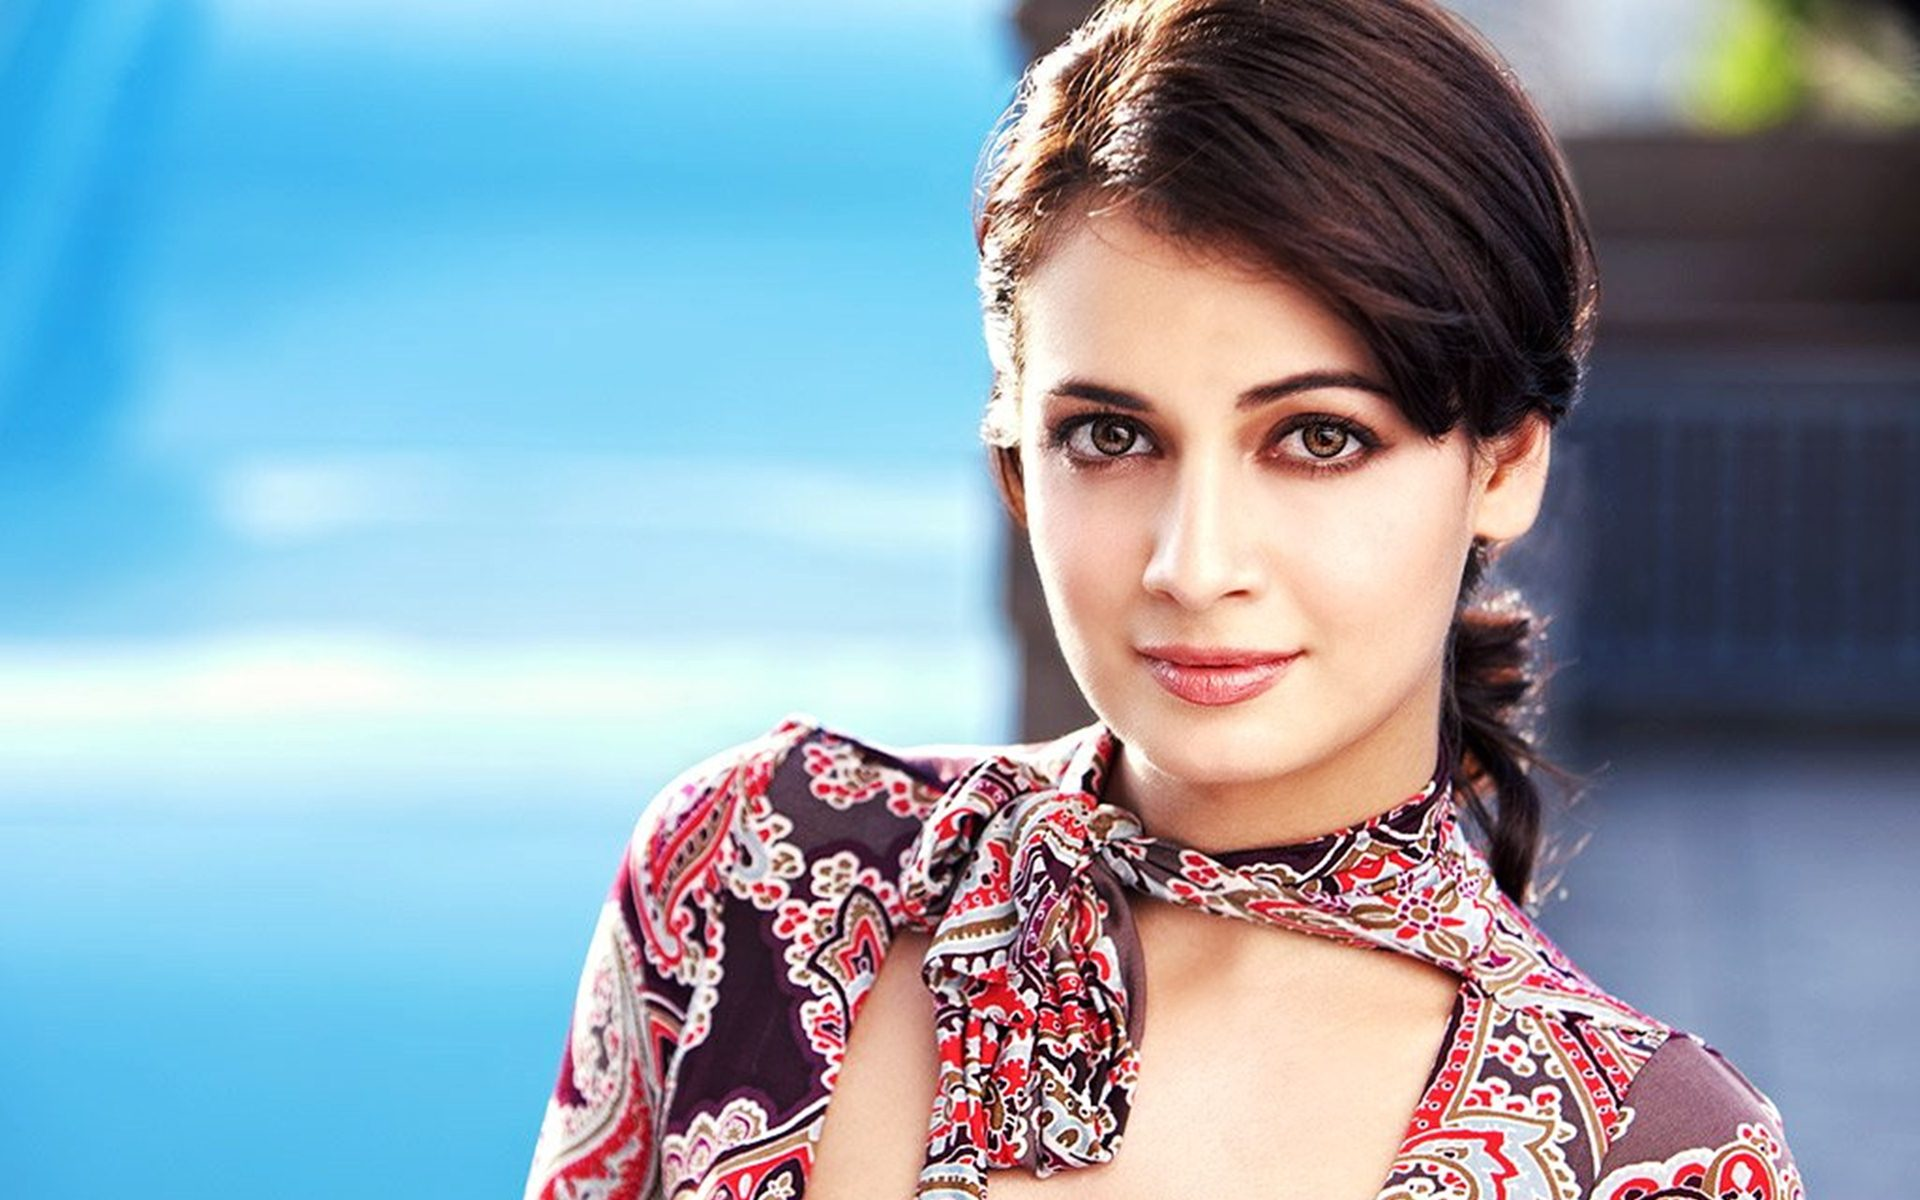 fantastic dia mirza cute look mobile download free background hd images